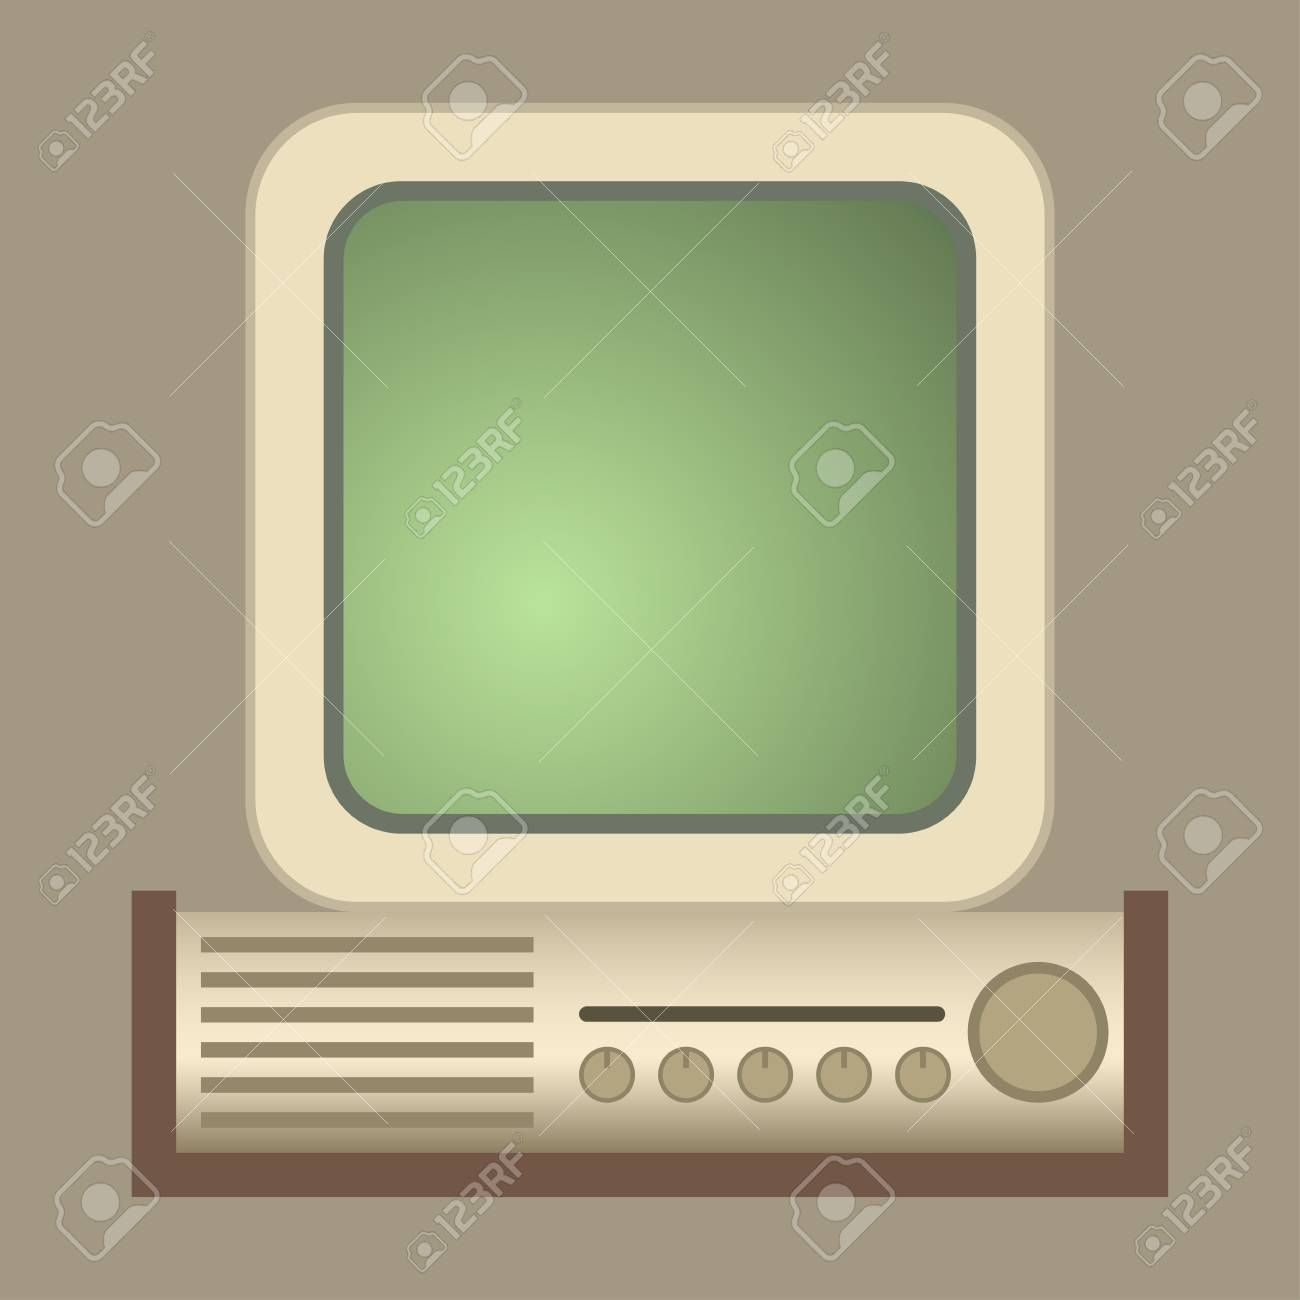 Retro Computer Vector Old Classic Antique Technology Business Personal Equipment In 2020 Computers Tablets And Accessories Computers For Sale Computer Vector